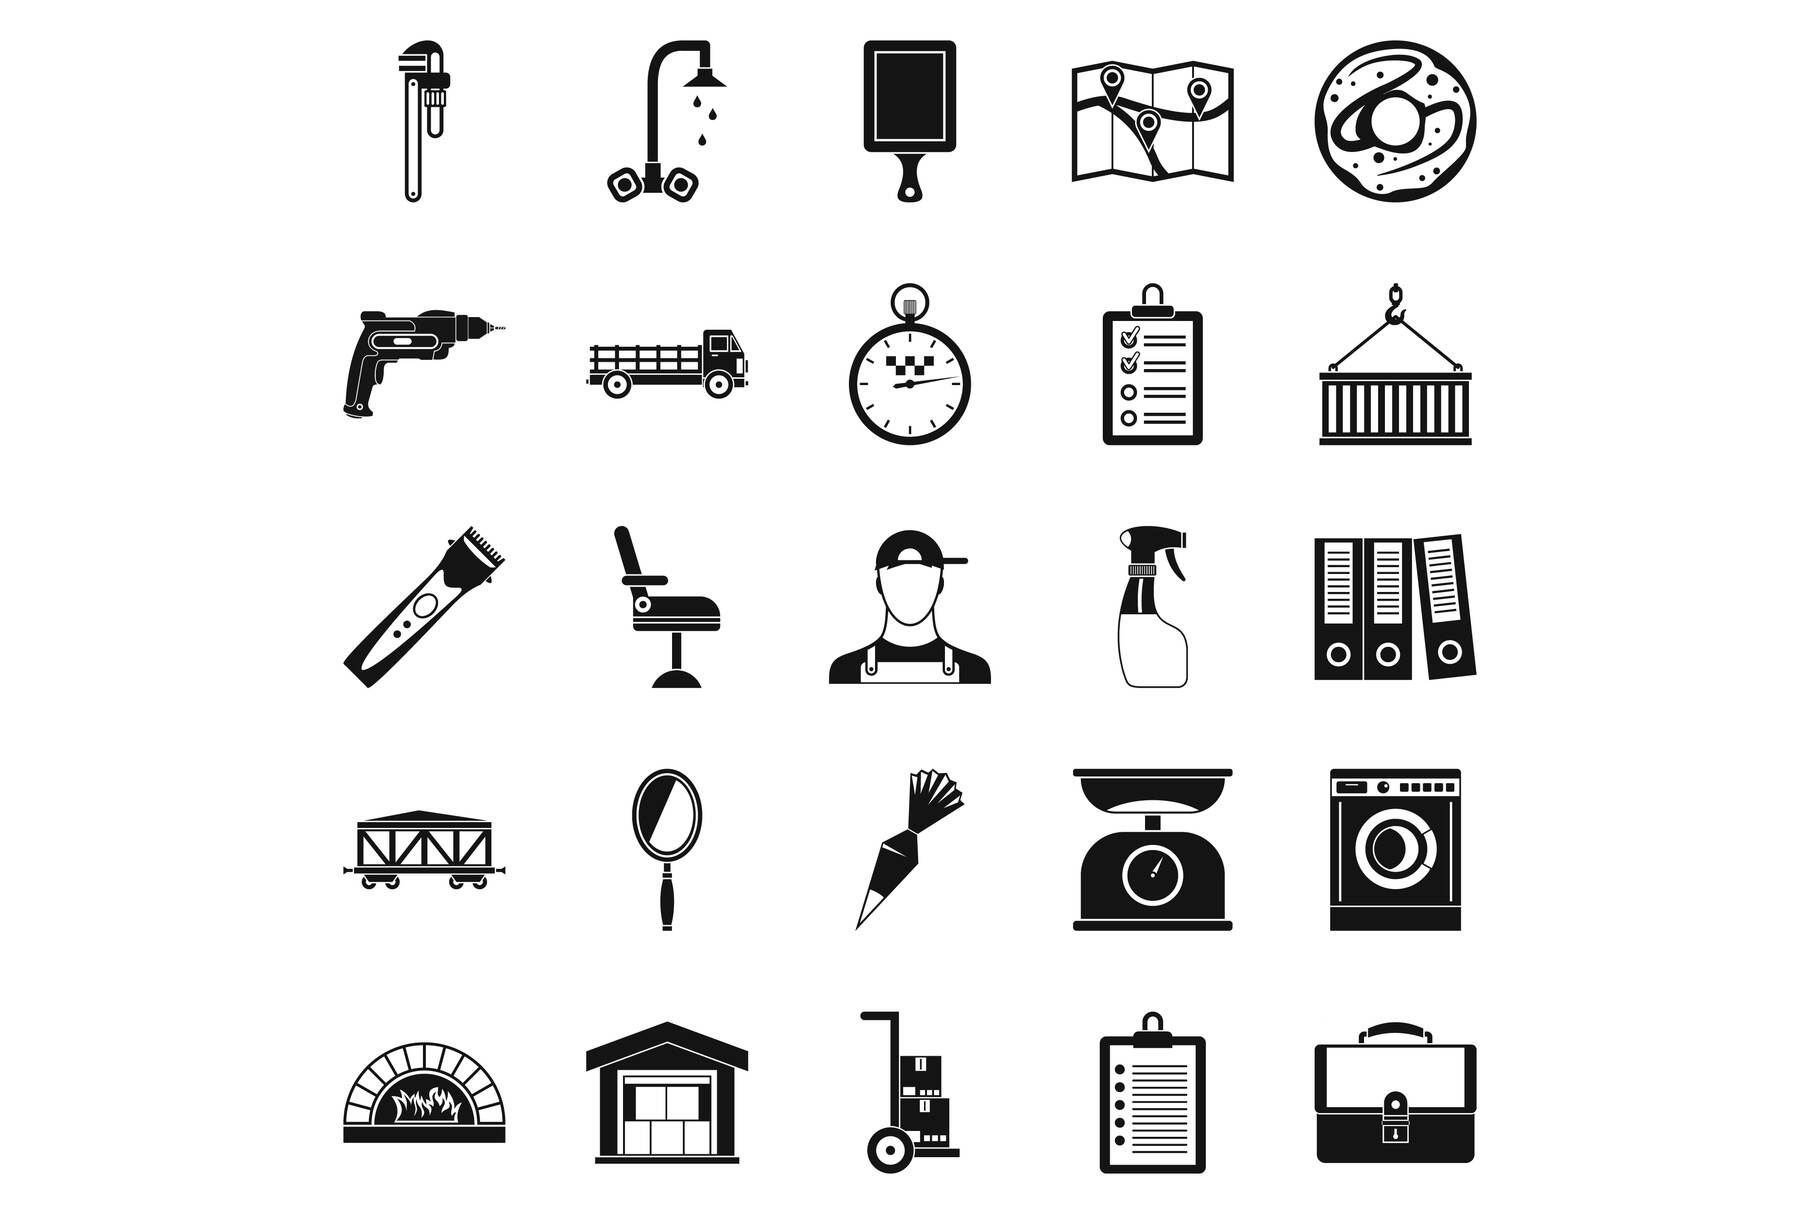 Warehouses icons set, simple style example image 1